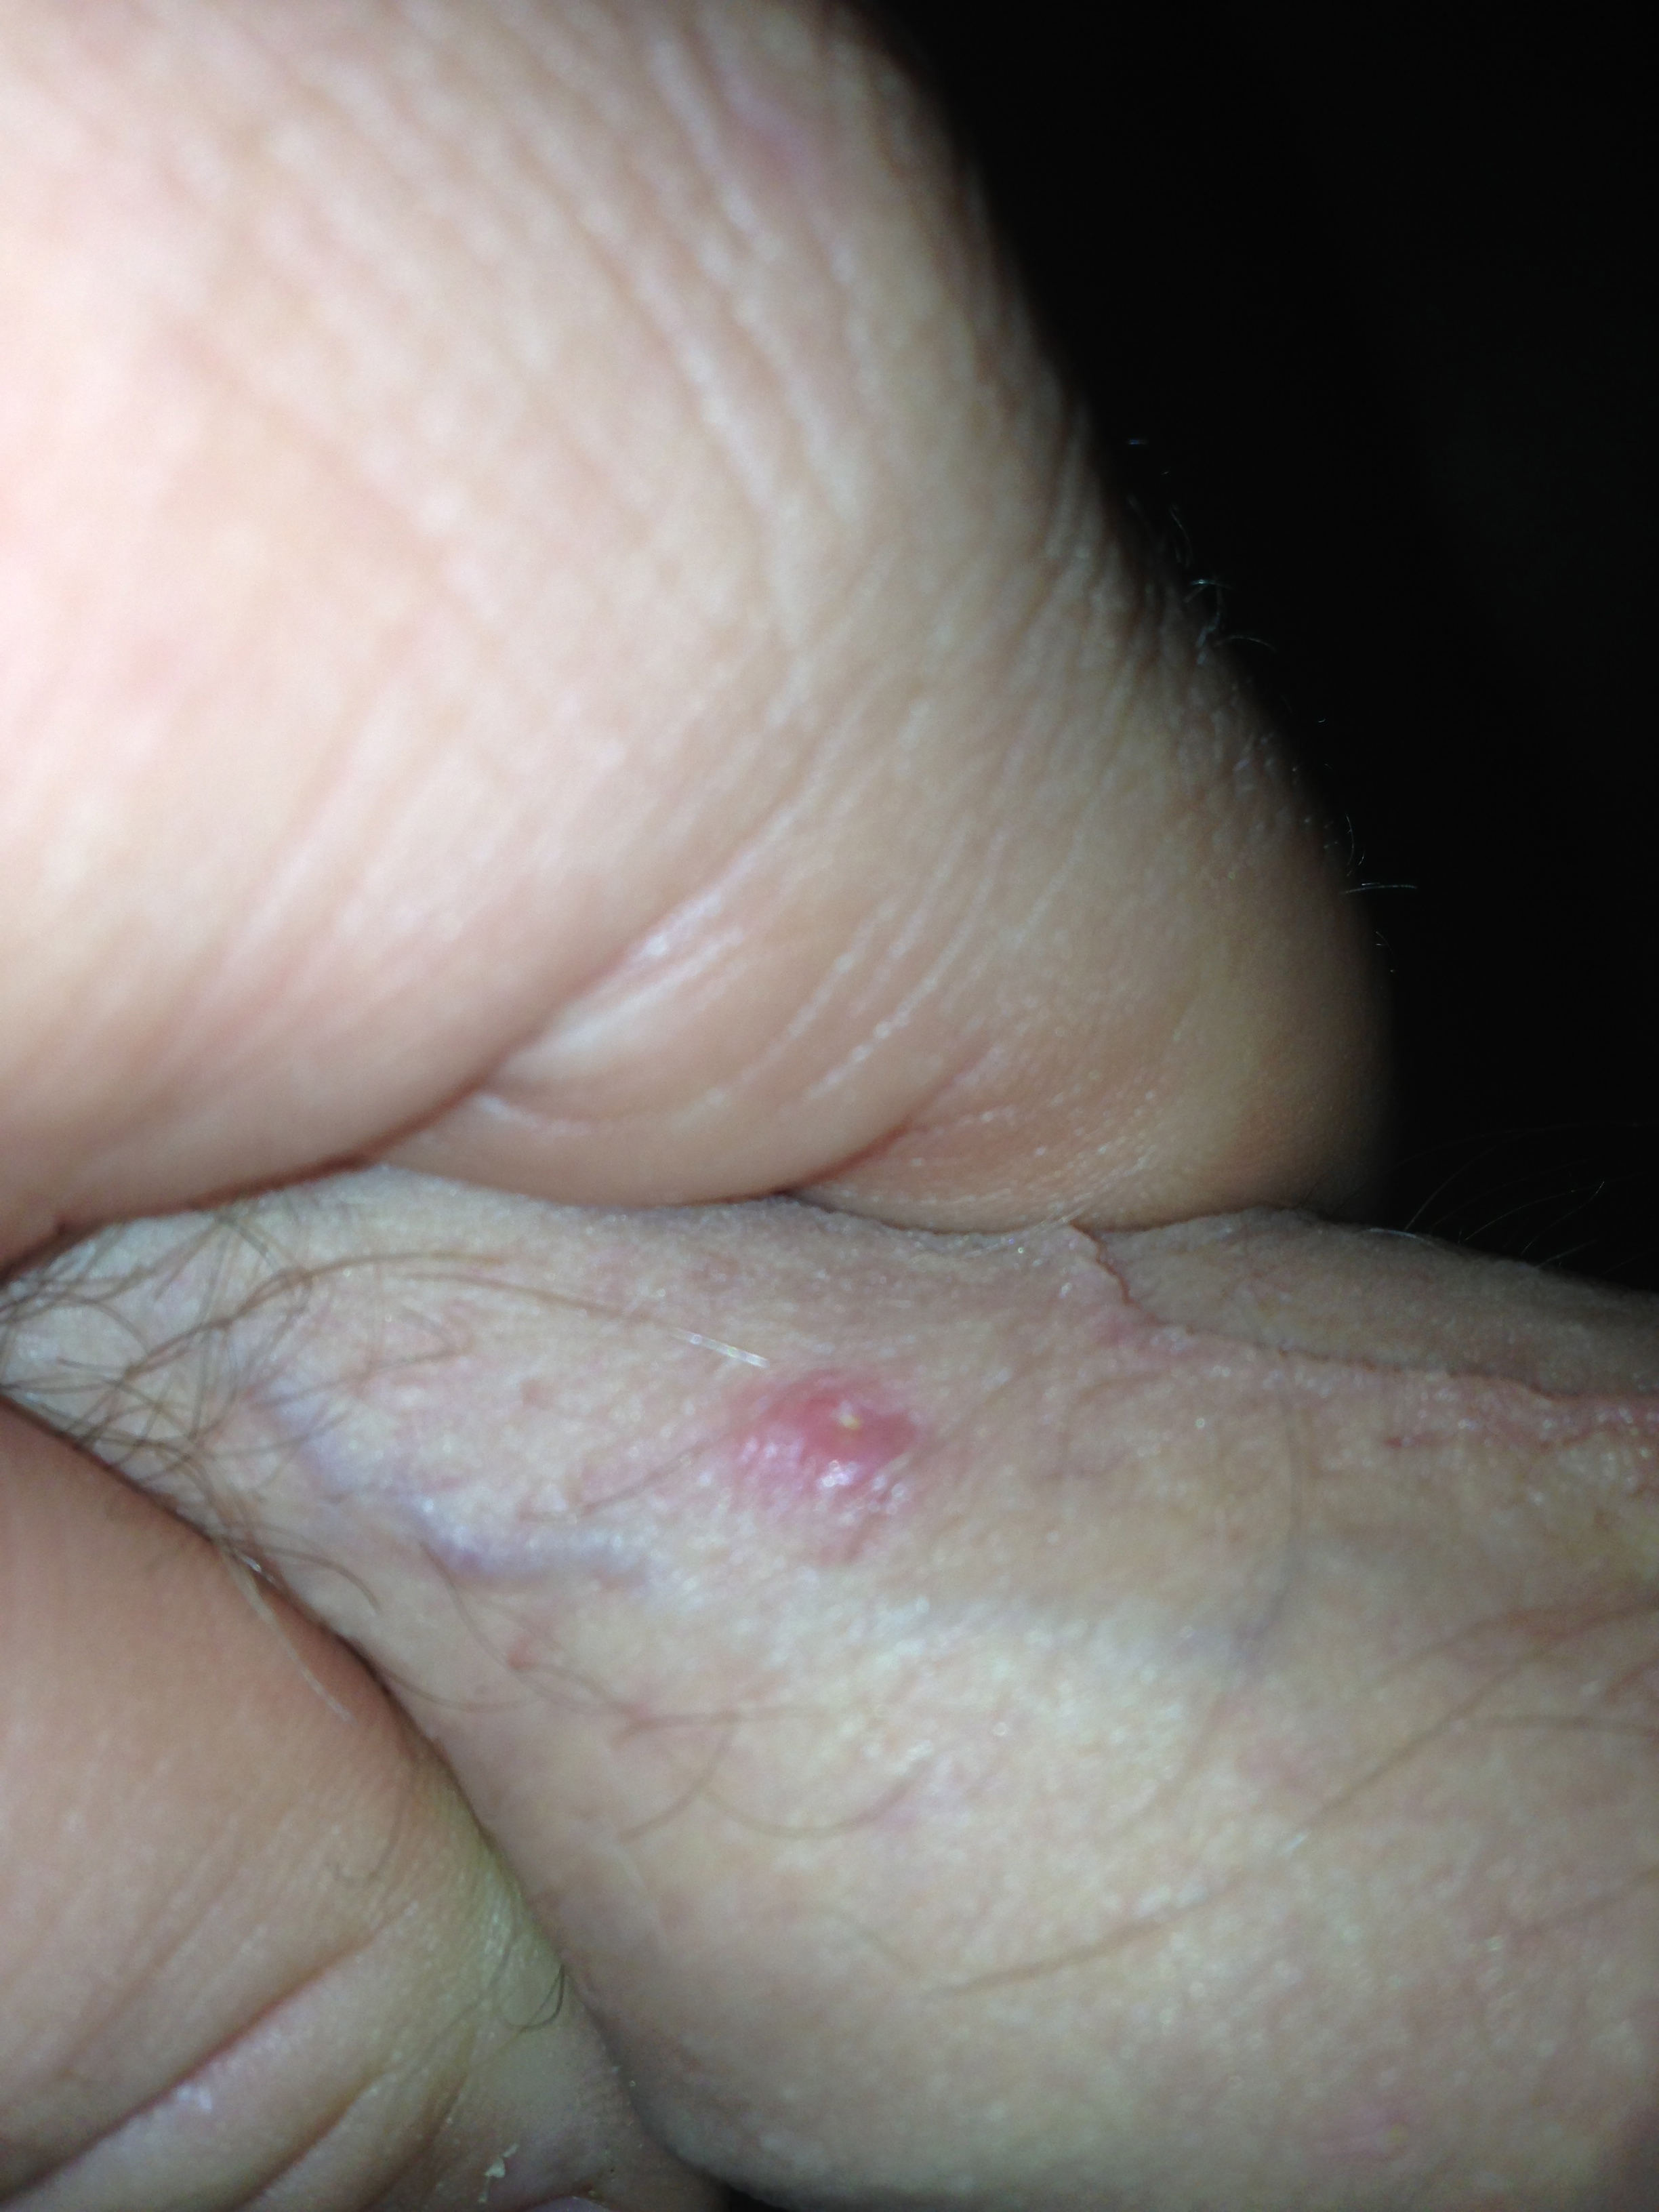 Ingrown Hair Infection Vaginal Ingrown hair infection vaginalHerpes Penile Shaft